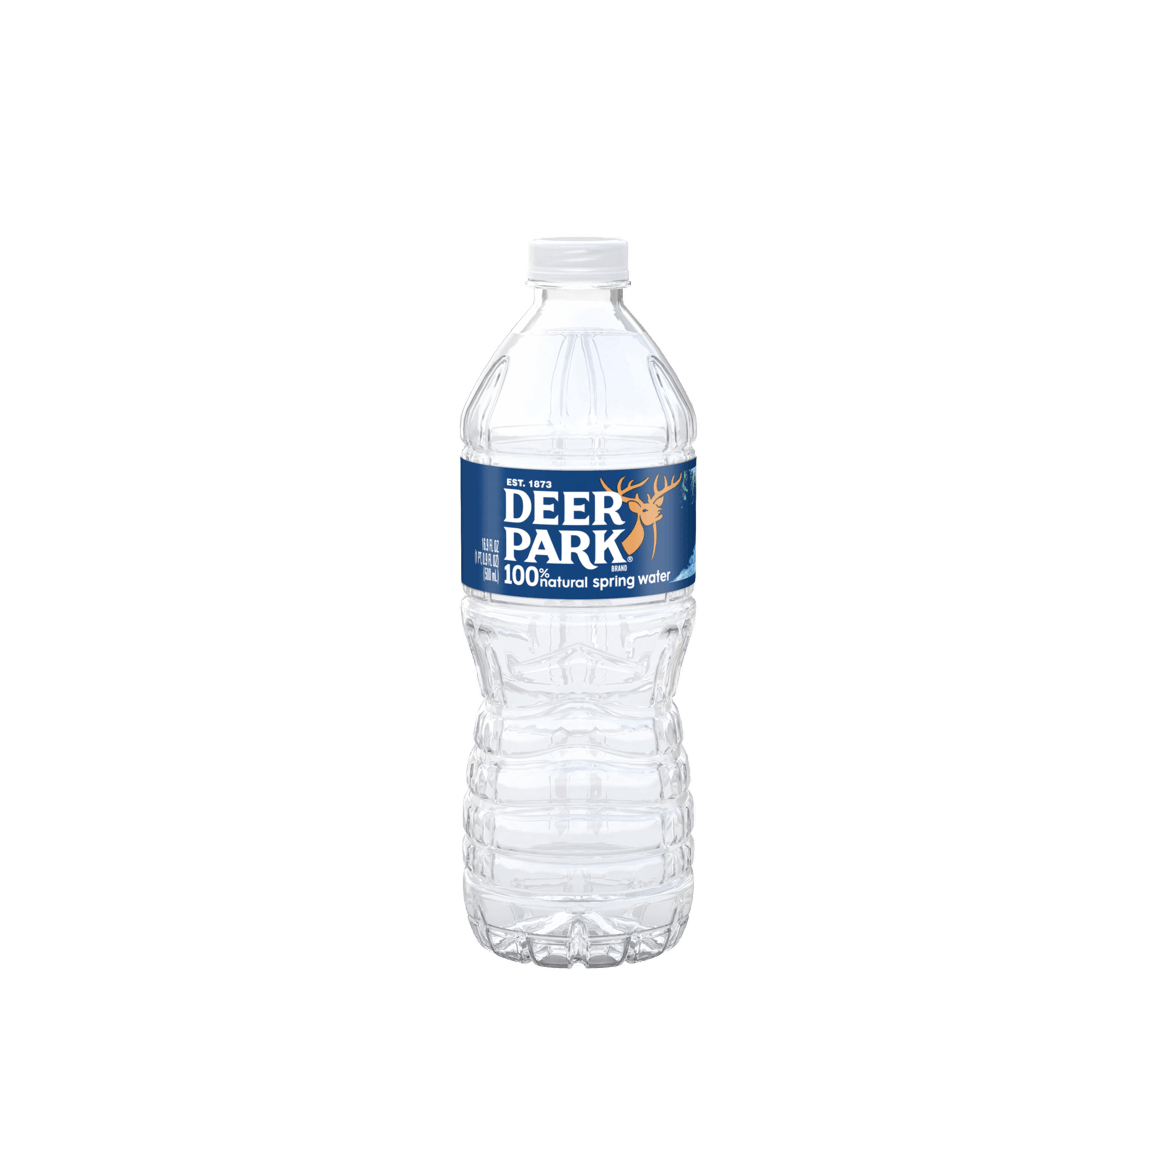 Deer Park® 100% Natural Spring Water Image2